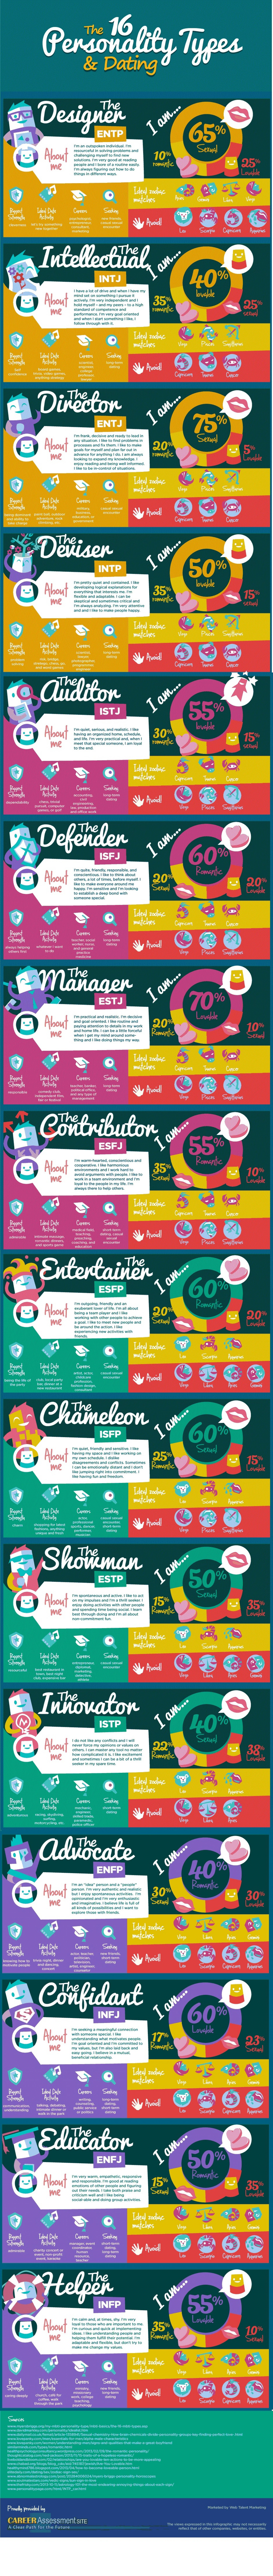 16 Personality Types And Dating